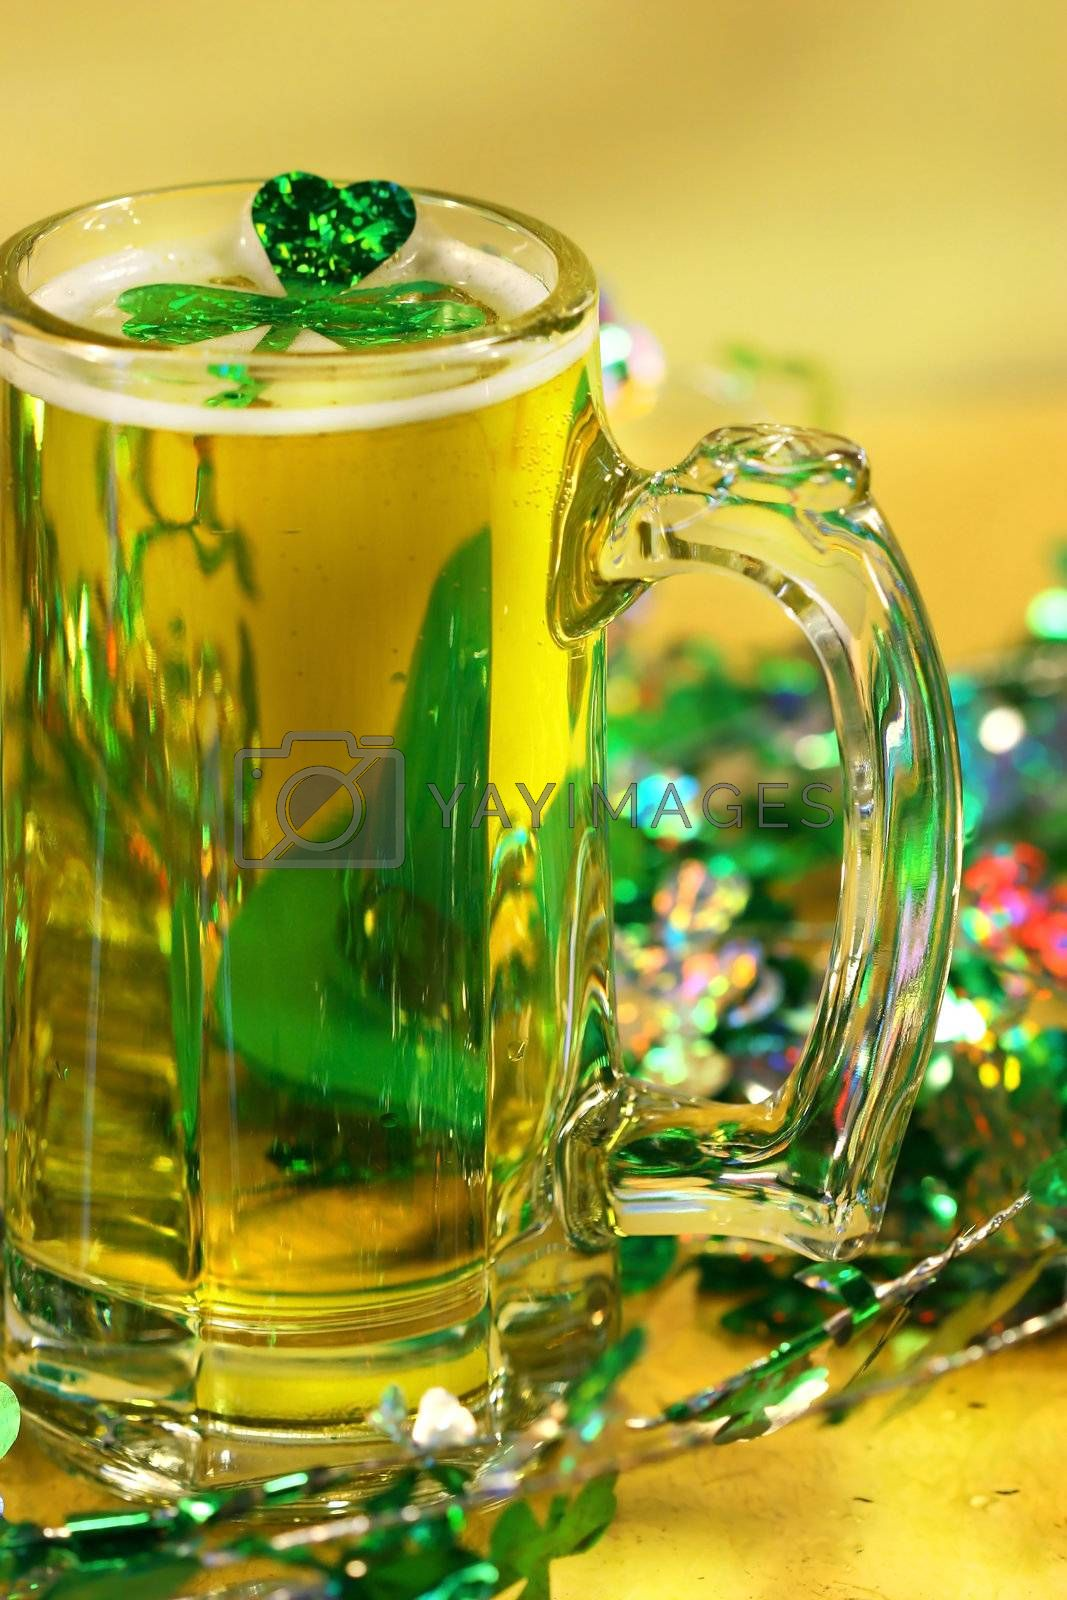 Mug of green beer for St Patick's Day